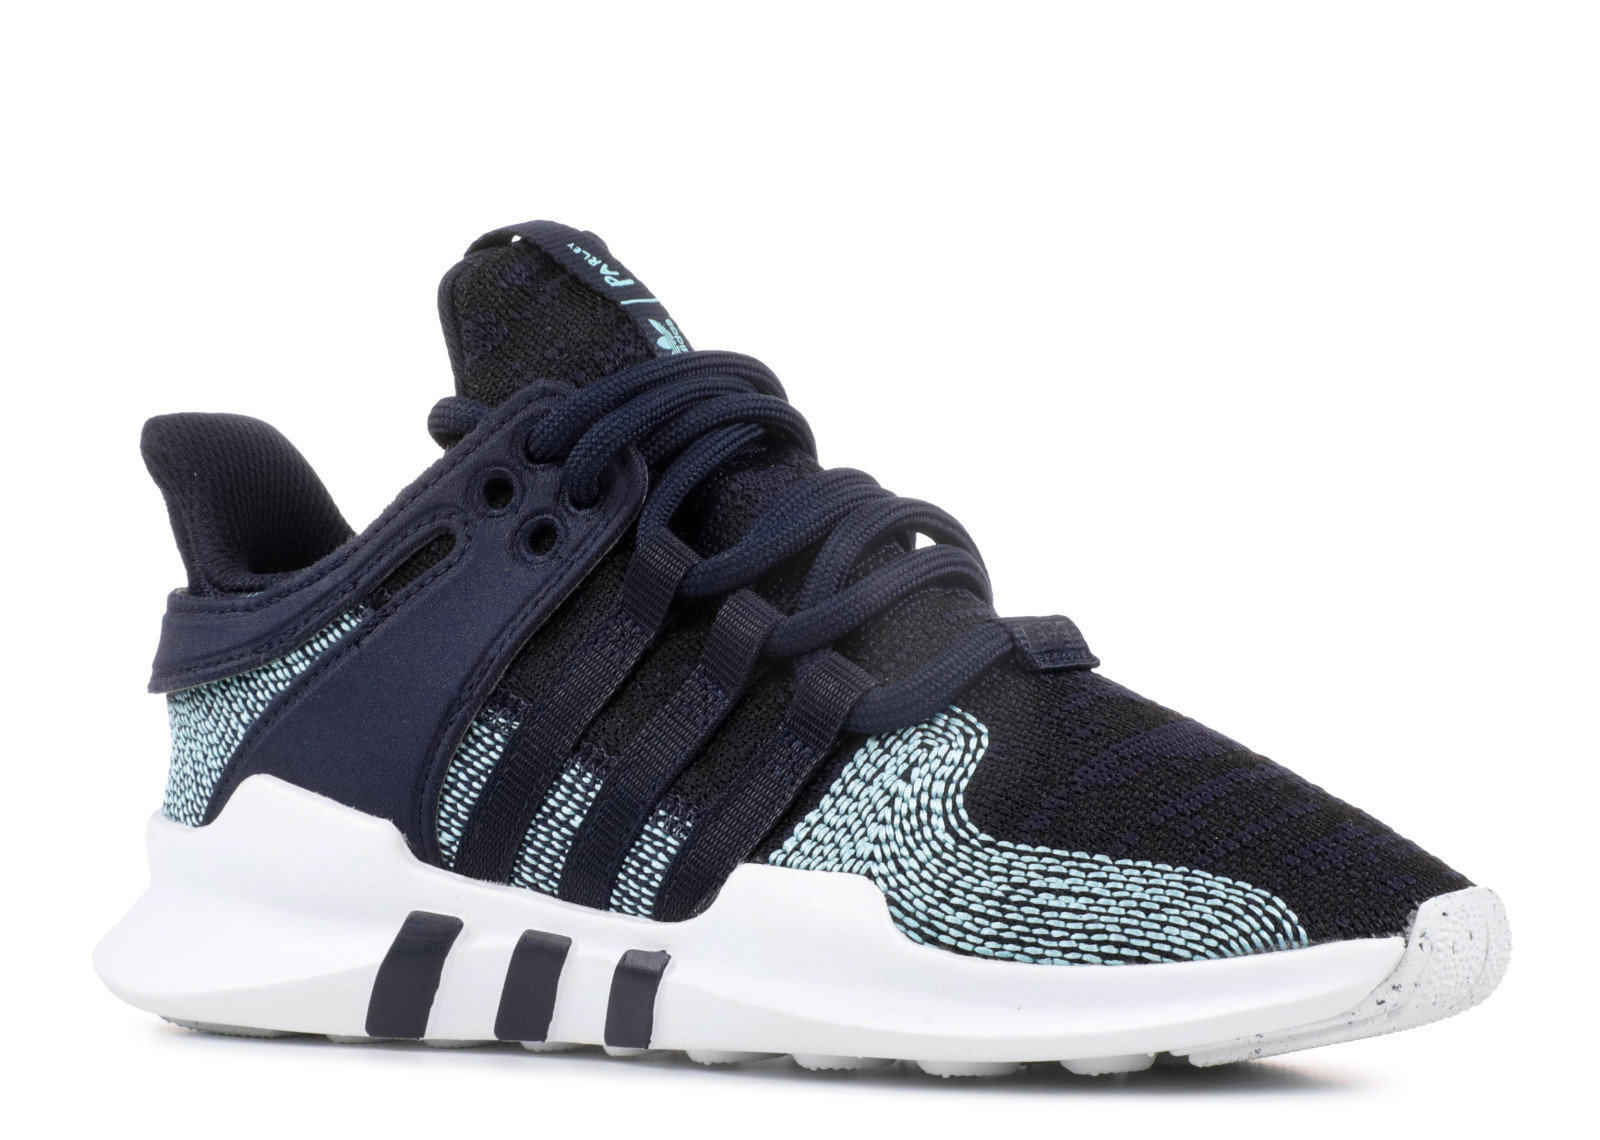 best sneakers 7ef34 16c2e Adidas EQT Support Adv